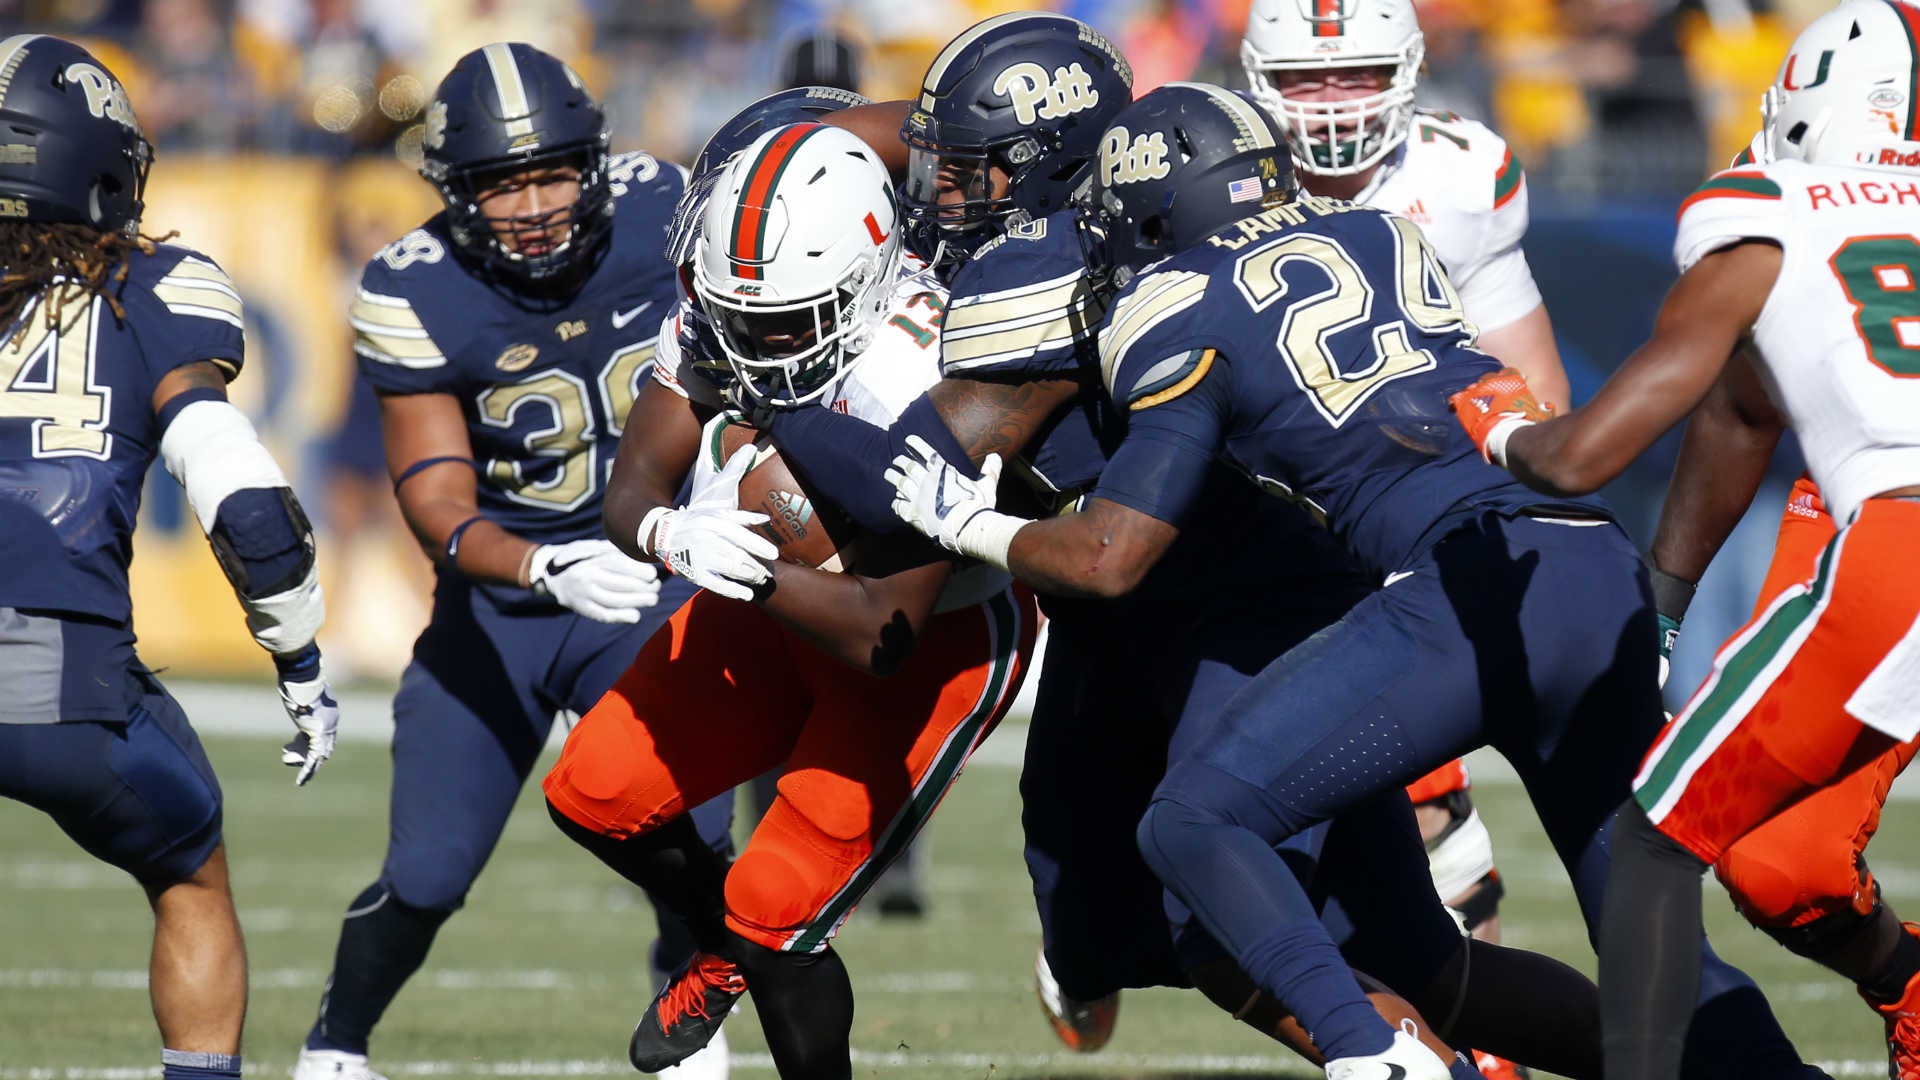 Pitt stuns No. 2 Miami, ends Hurricanes' ideal season